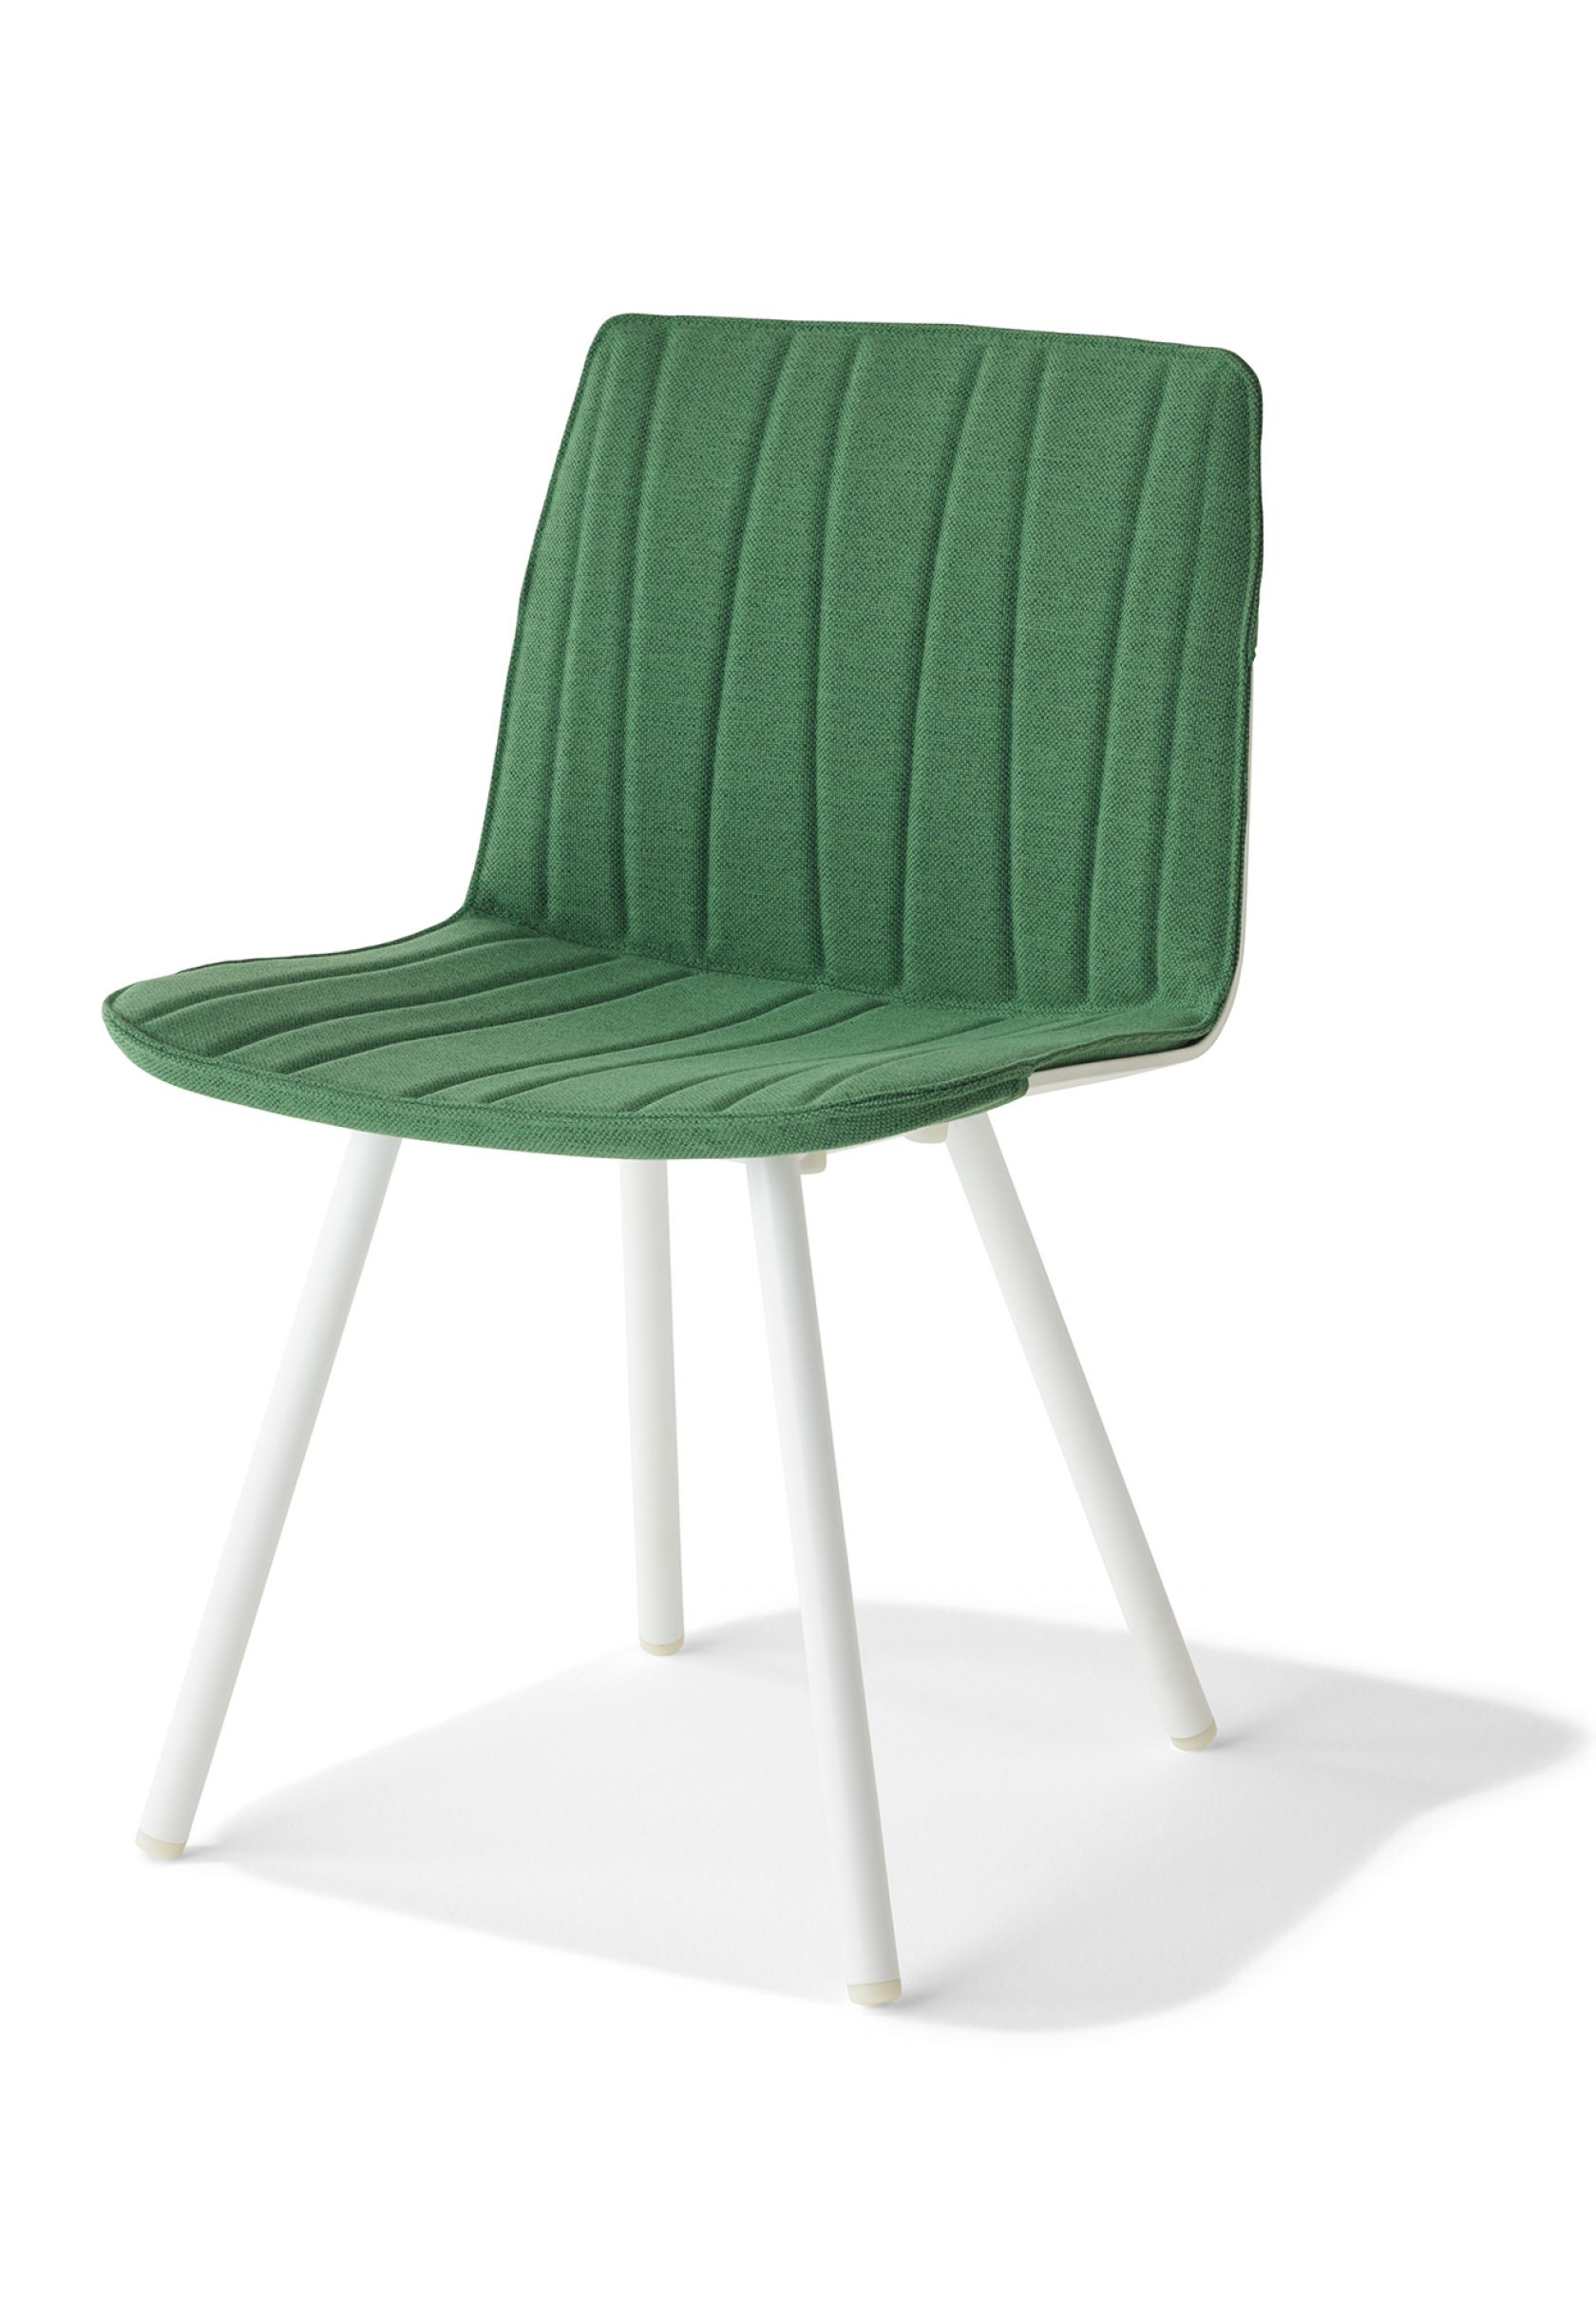 MR Chair green